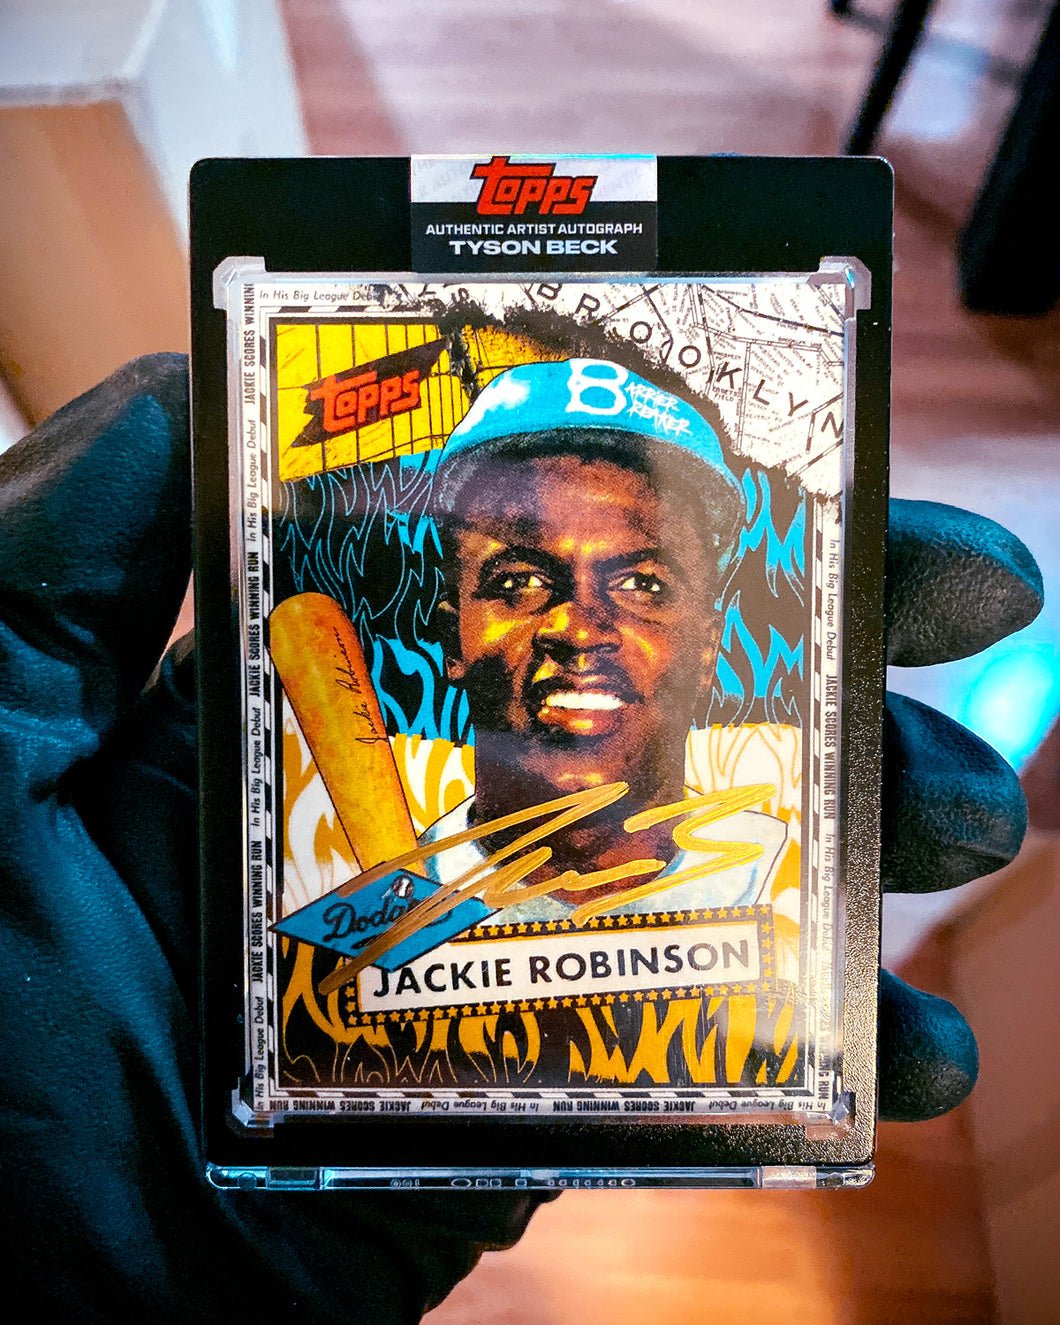 Jackie Robinson by Tyson Beck - GOLD AUTOGRAPH - LIMITED TO 10